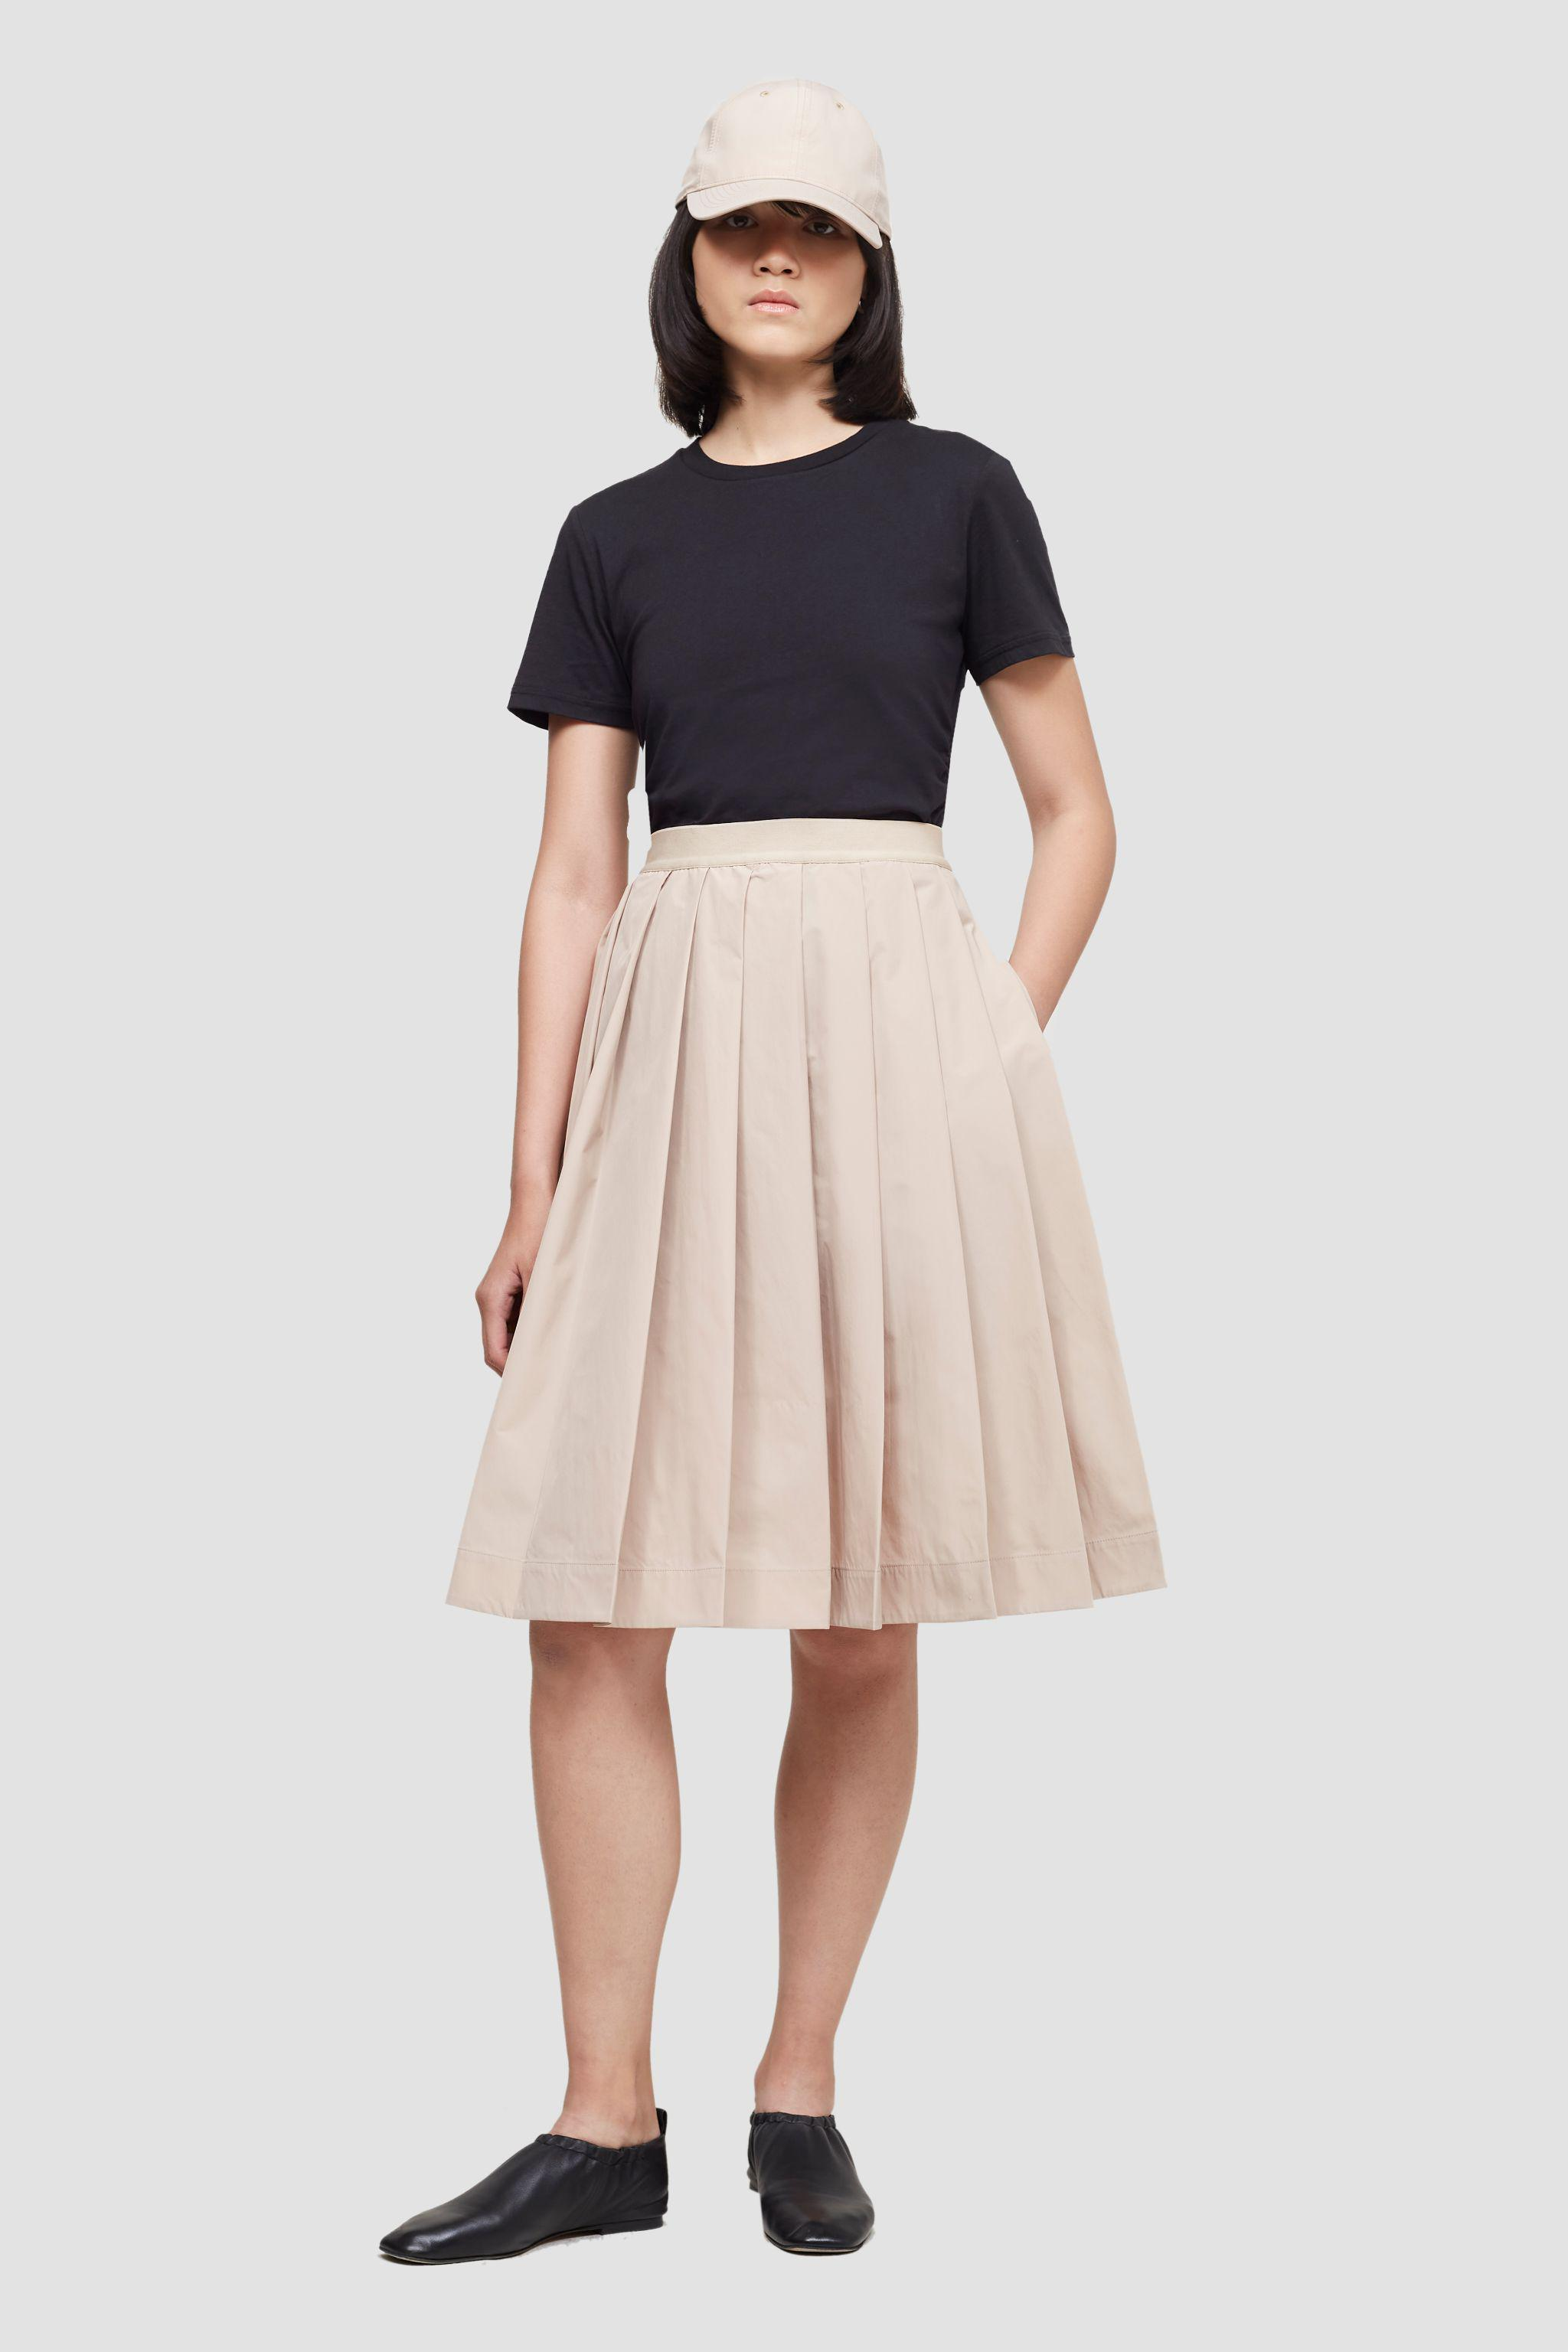 The Day Pleated Skirt